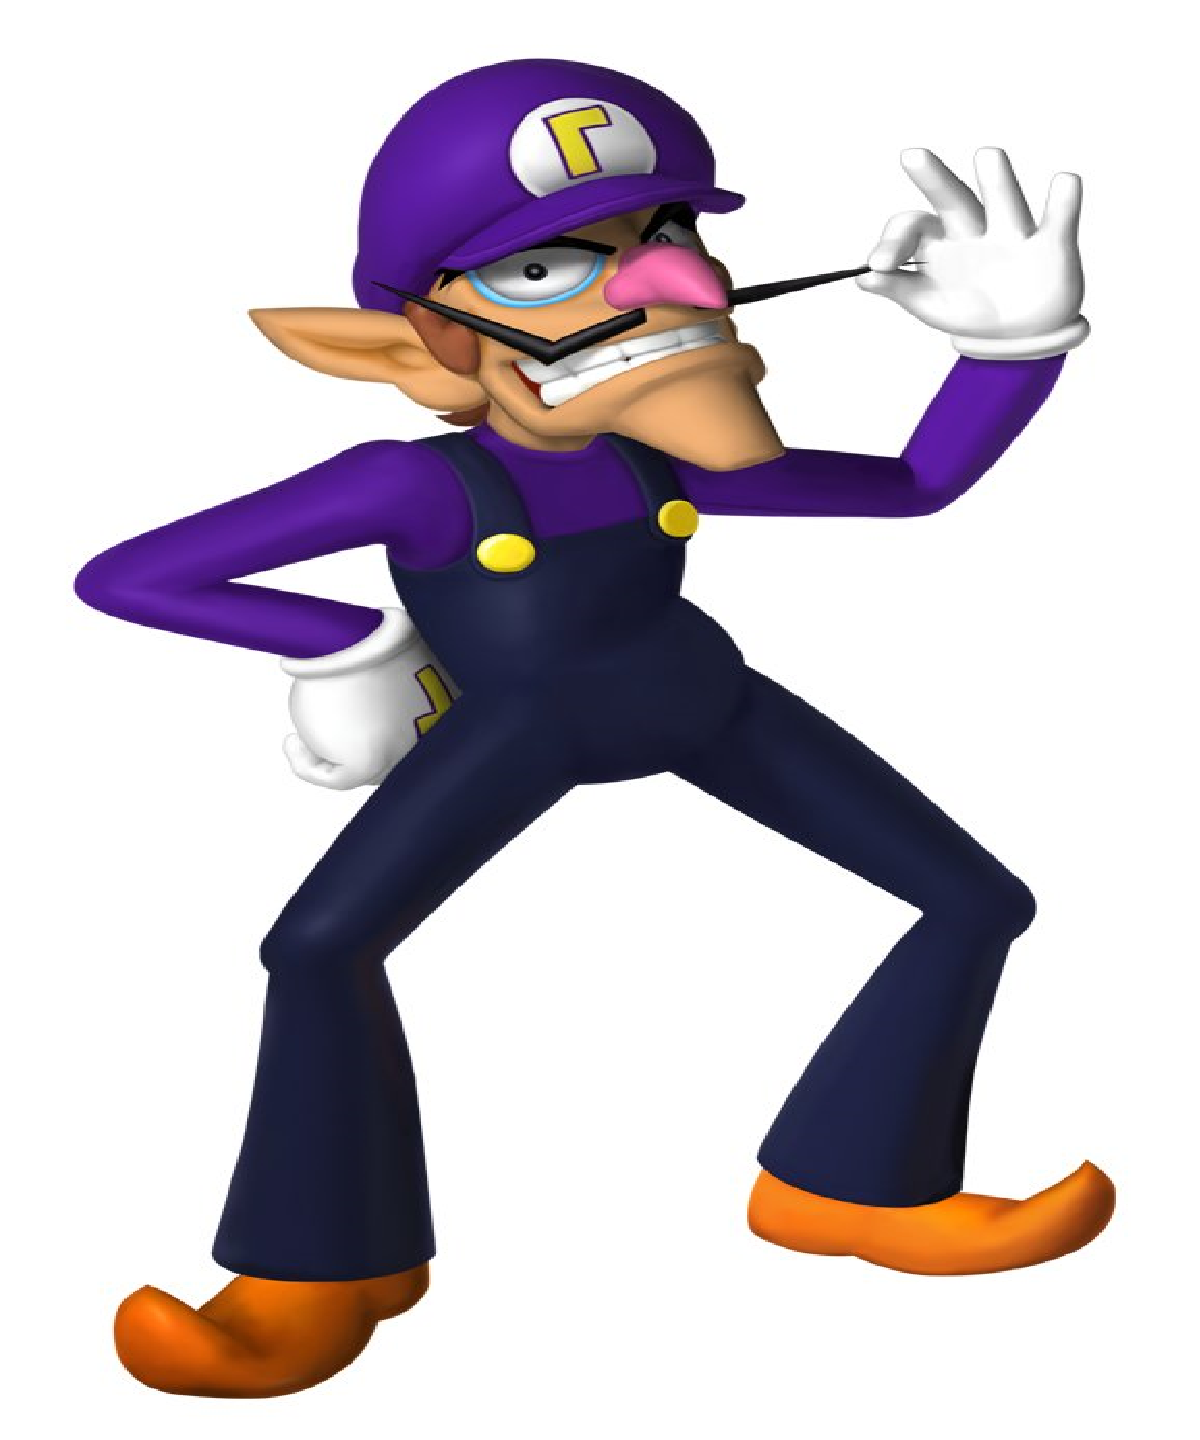 Image - Waluigi (mariokirby).png - Fantendo, the Video ...